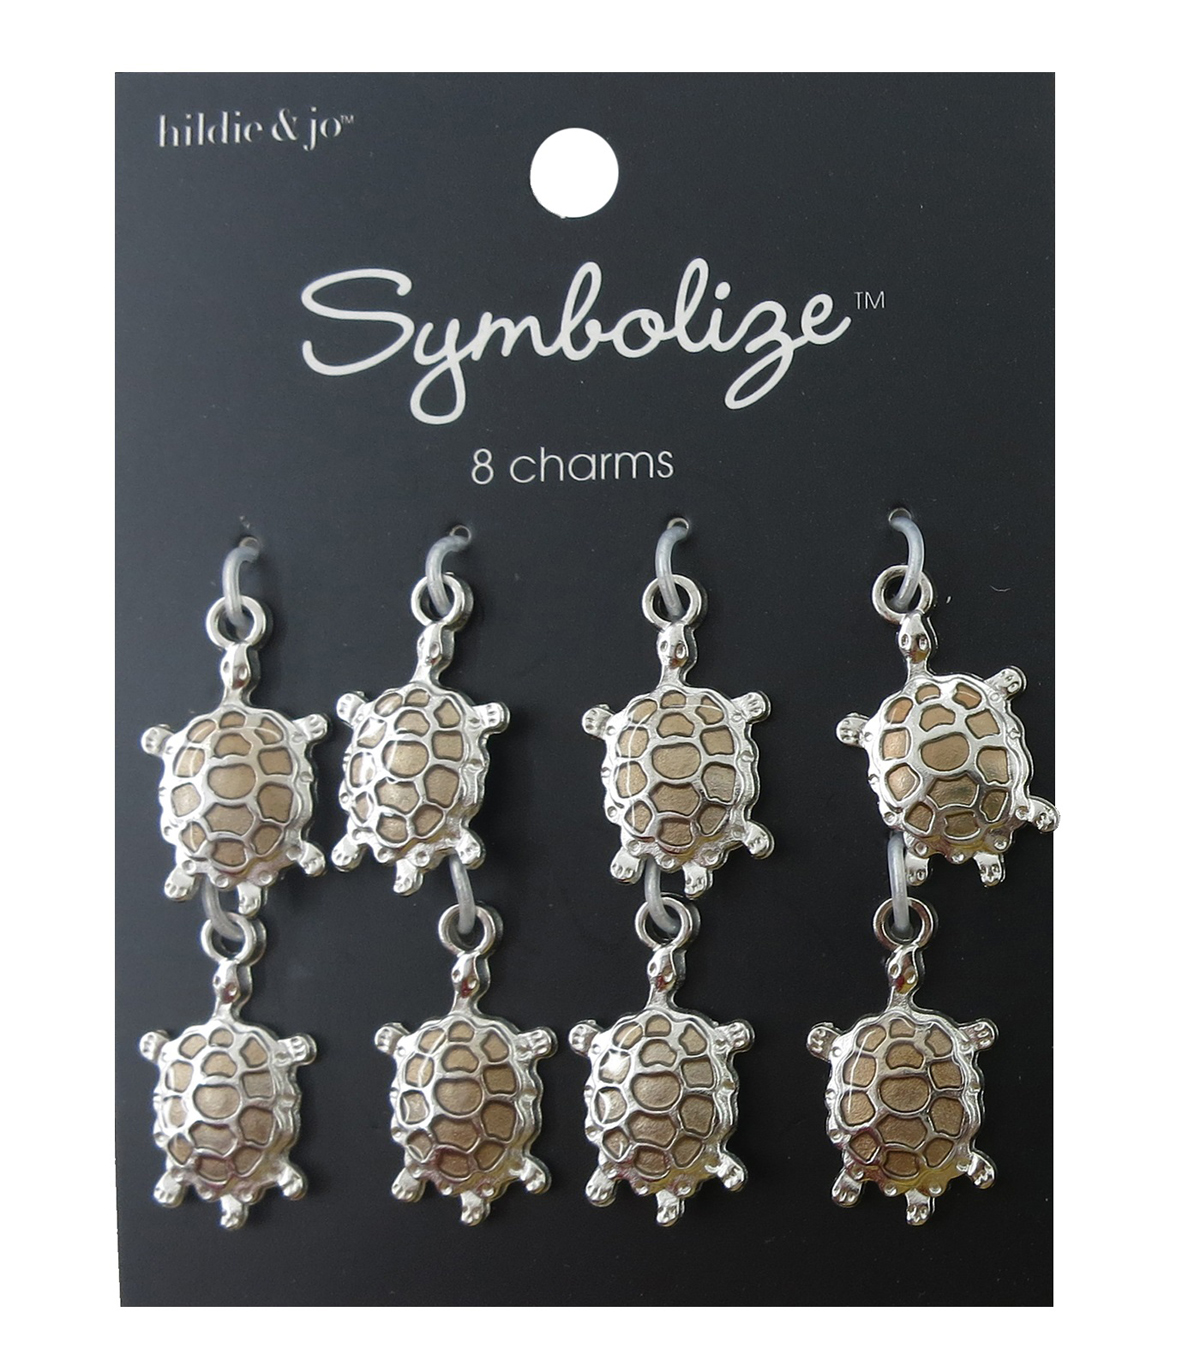 hildie & jo Symbolize 8 Pack Turtle Silver Charms